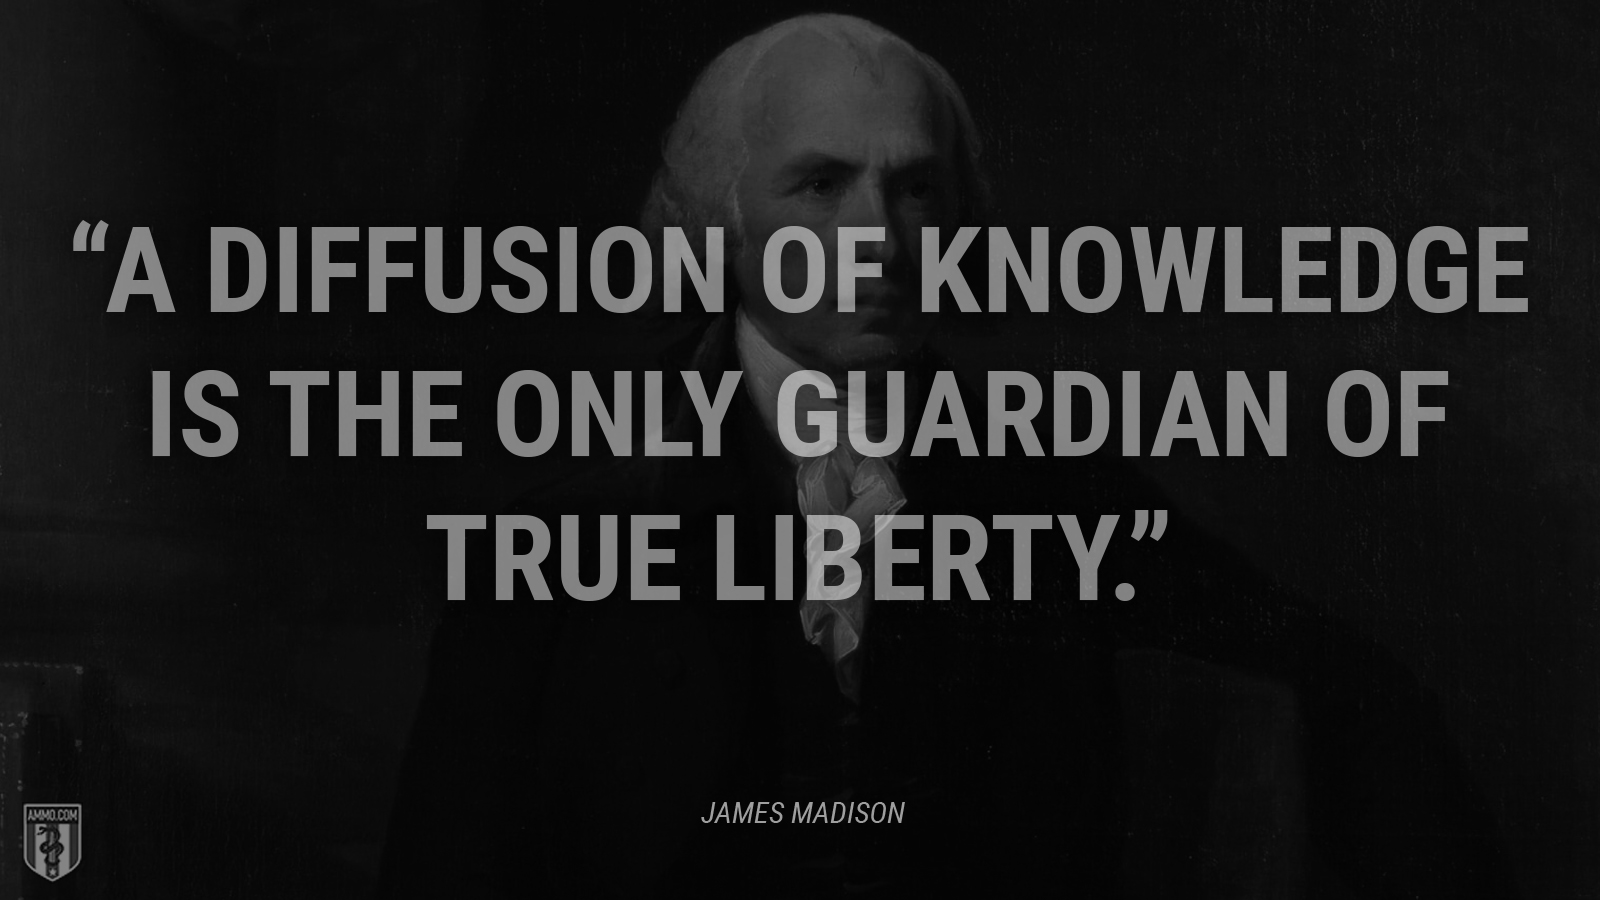 """A diffusion of knowledge is the only guardian of true liberty."" - James Madison"